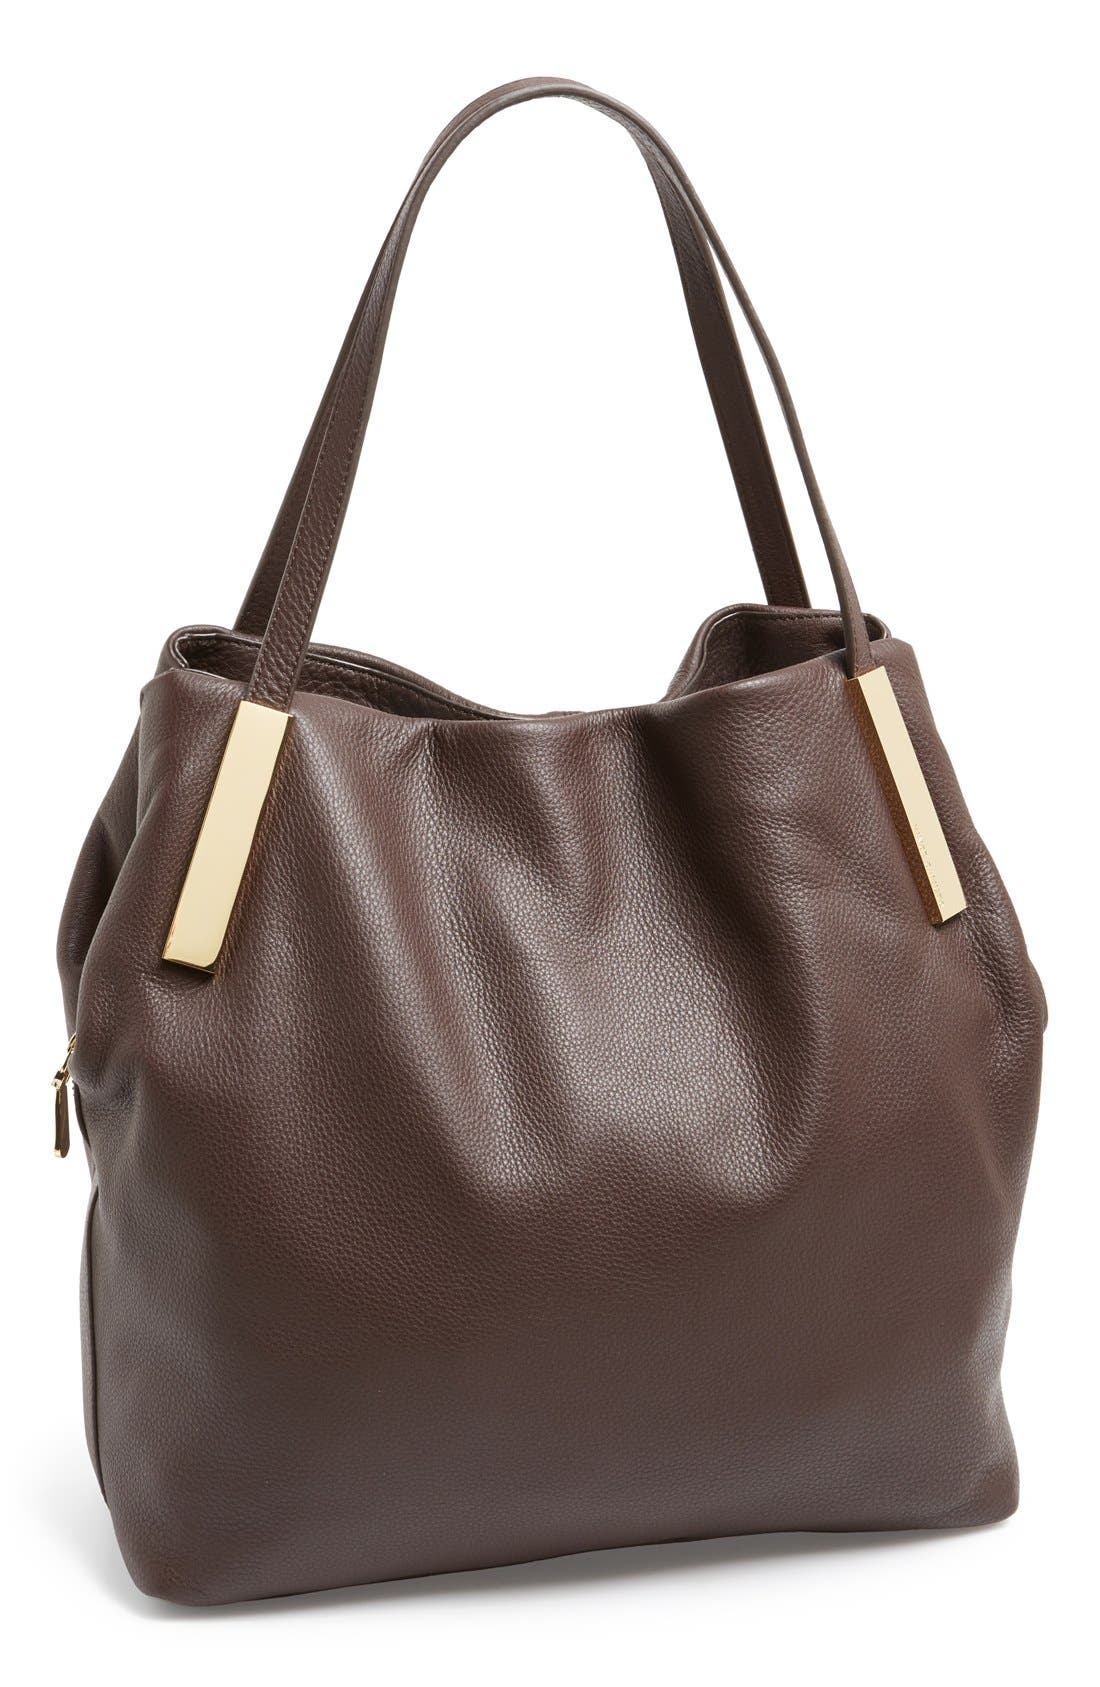 Main Image - Vince Camuto 'Brody' Leather Tote